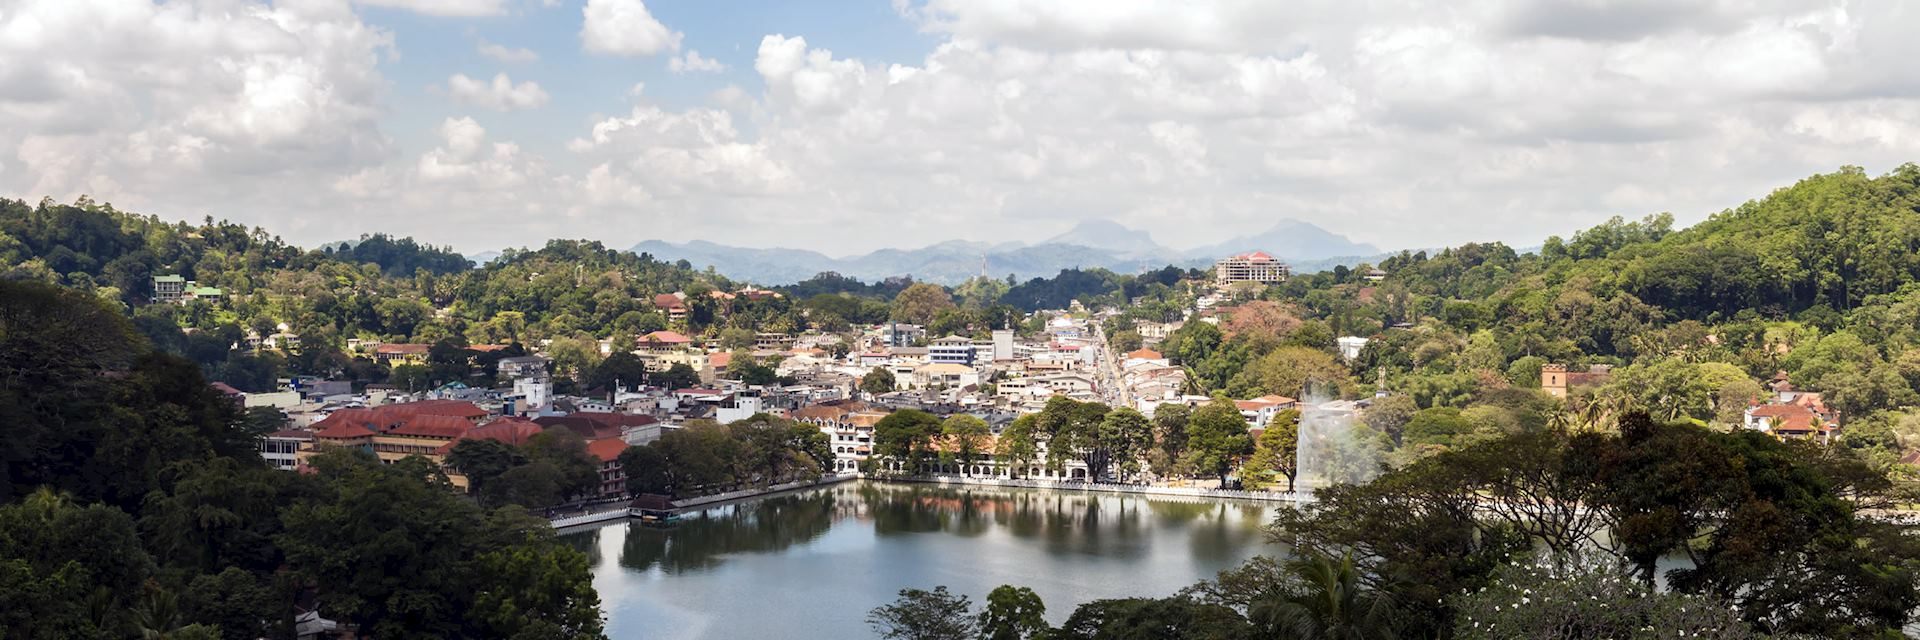 At the heart of Kandy is Lake Bogambara